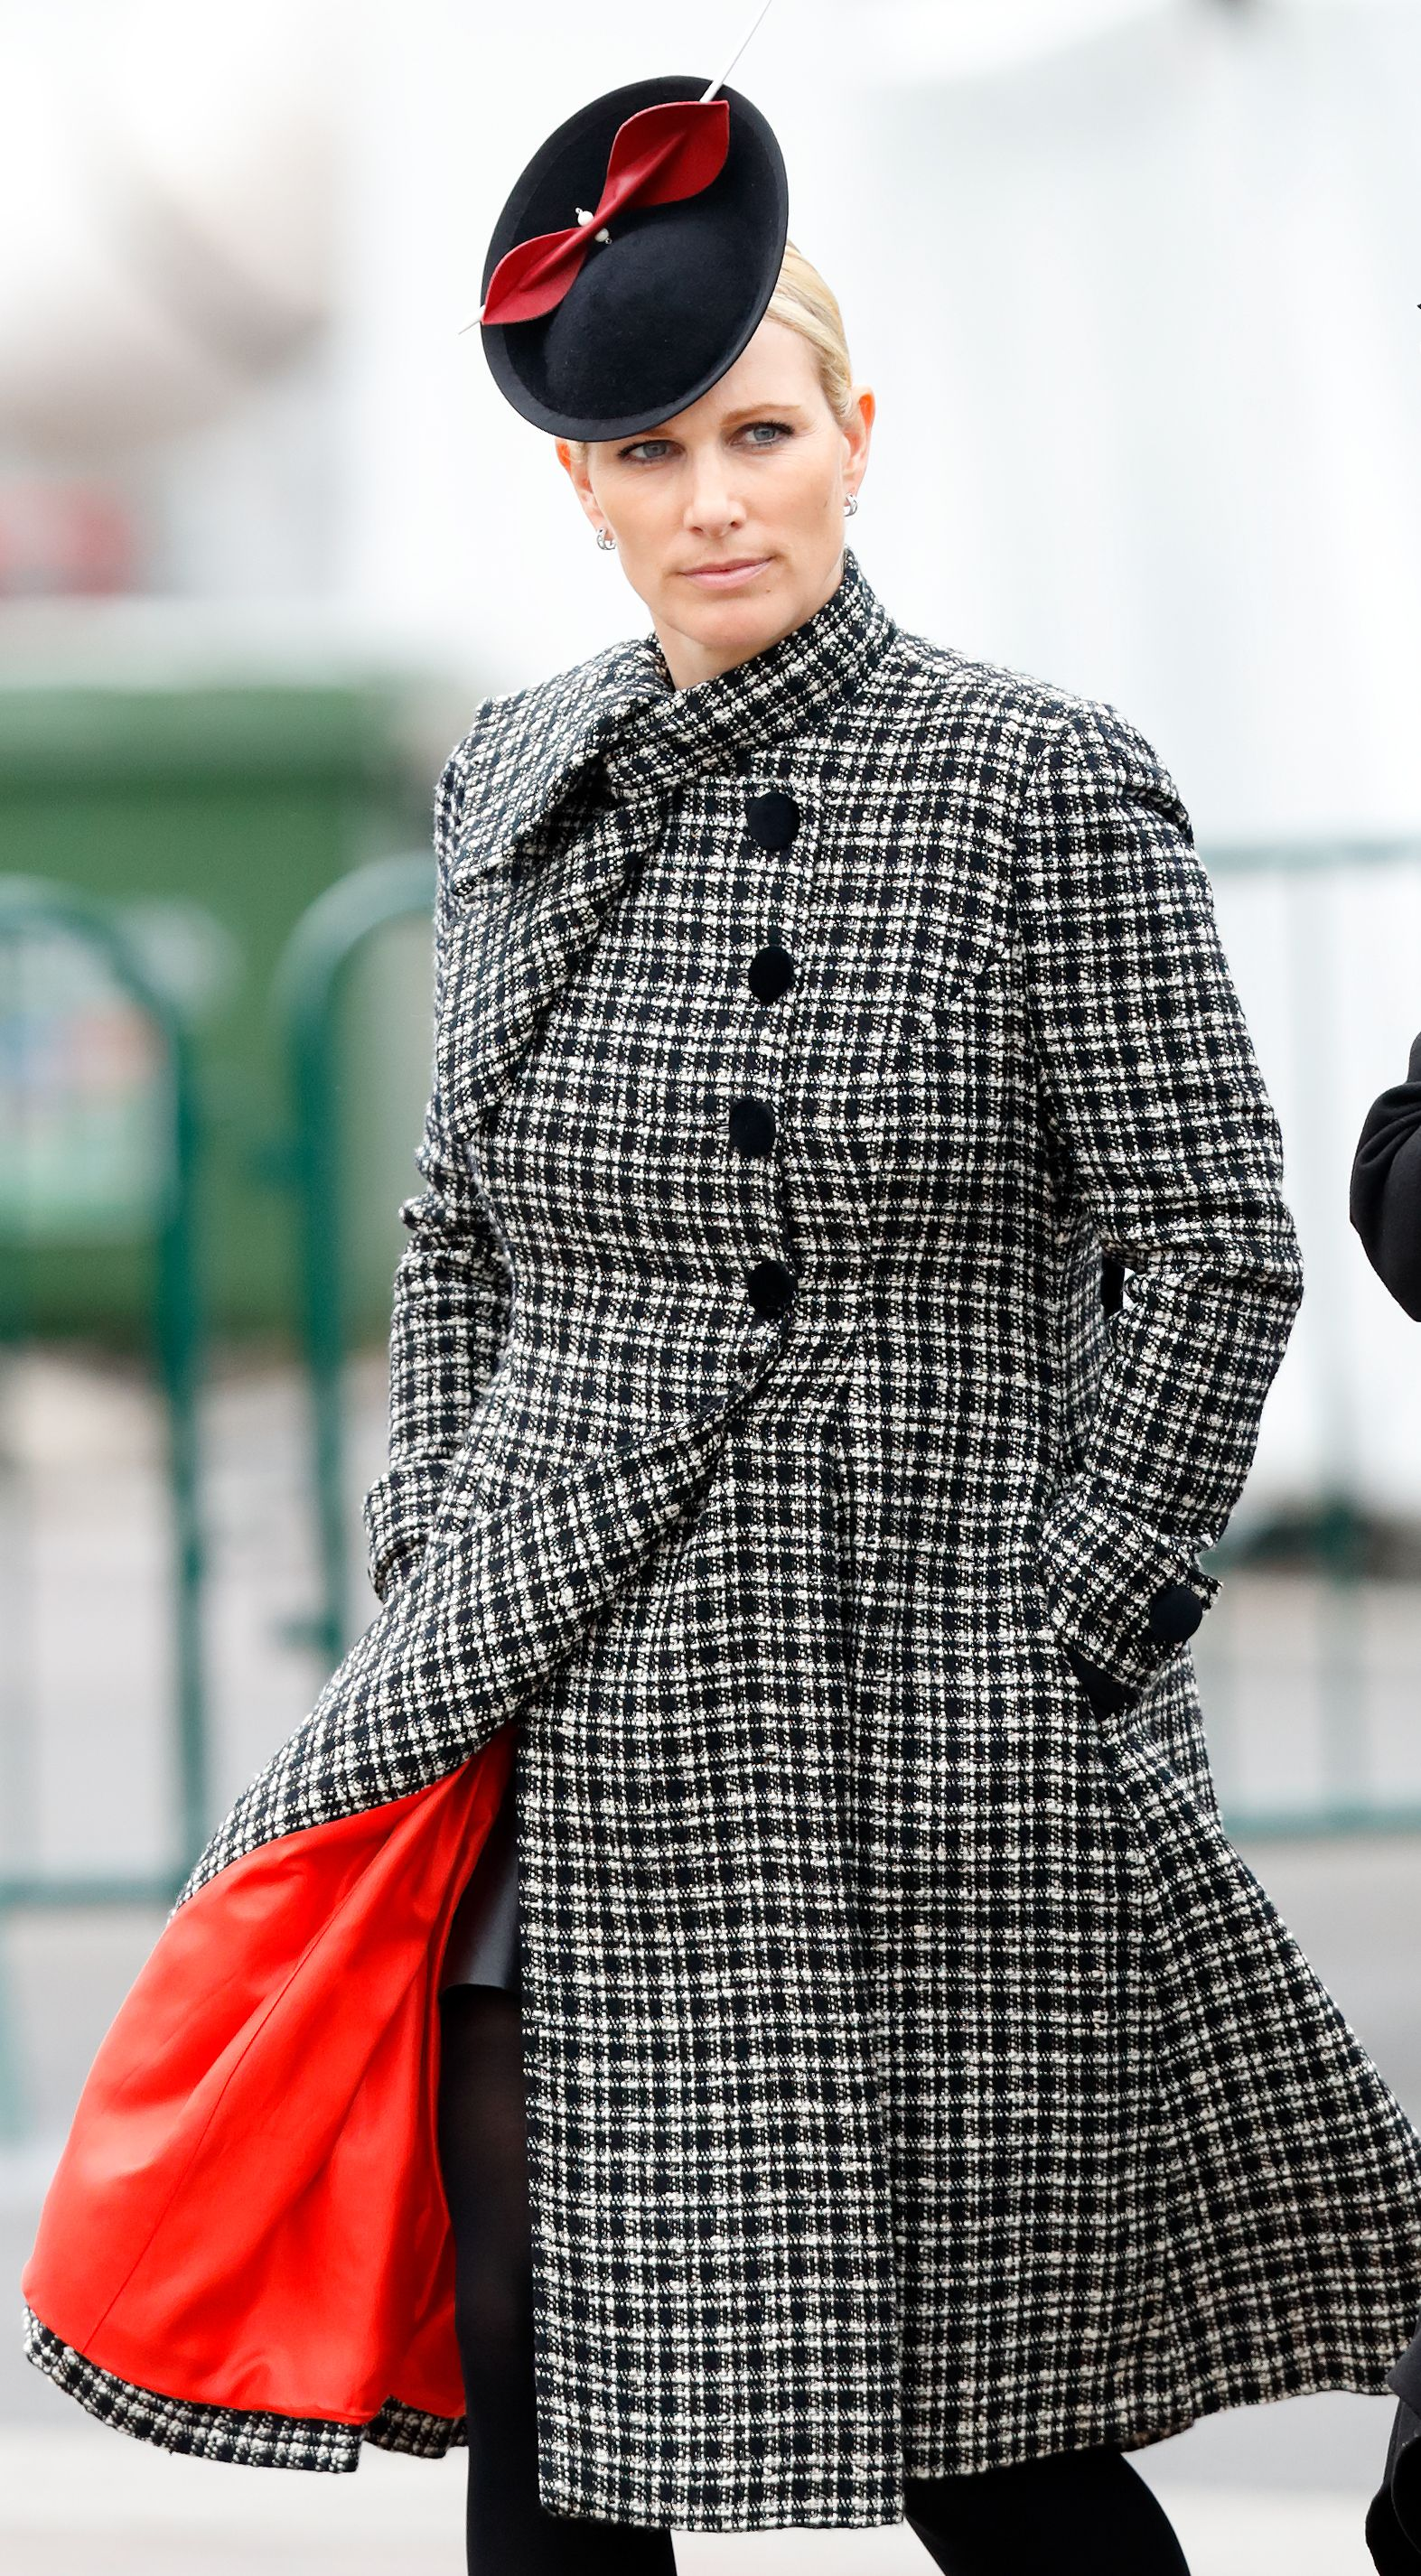 Zara Tindall, Queen Elizabeth's Granddaughter, Has Been Banned from Driving for Six Months